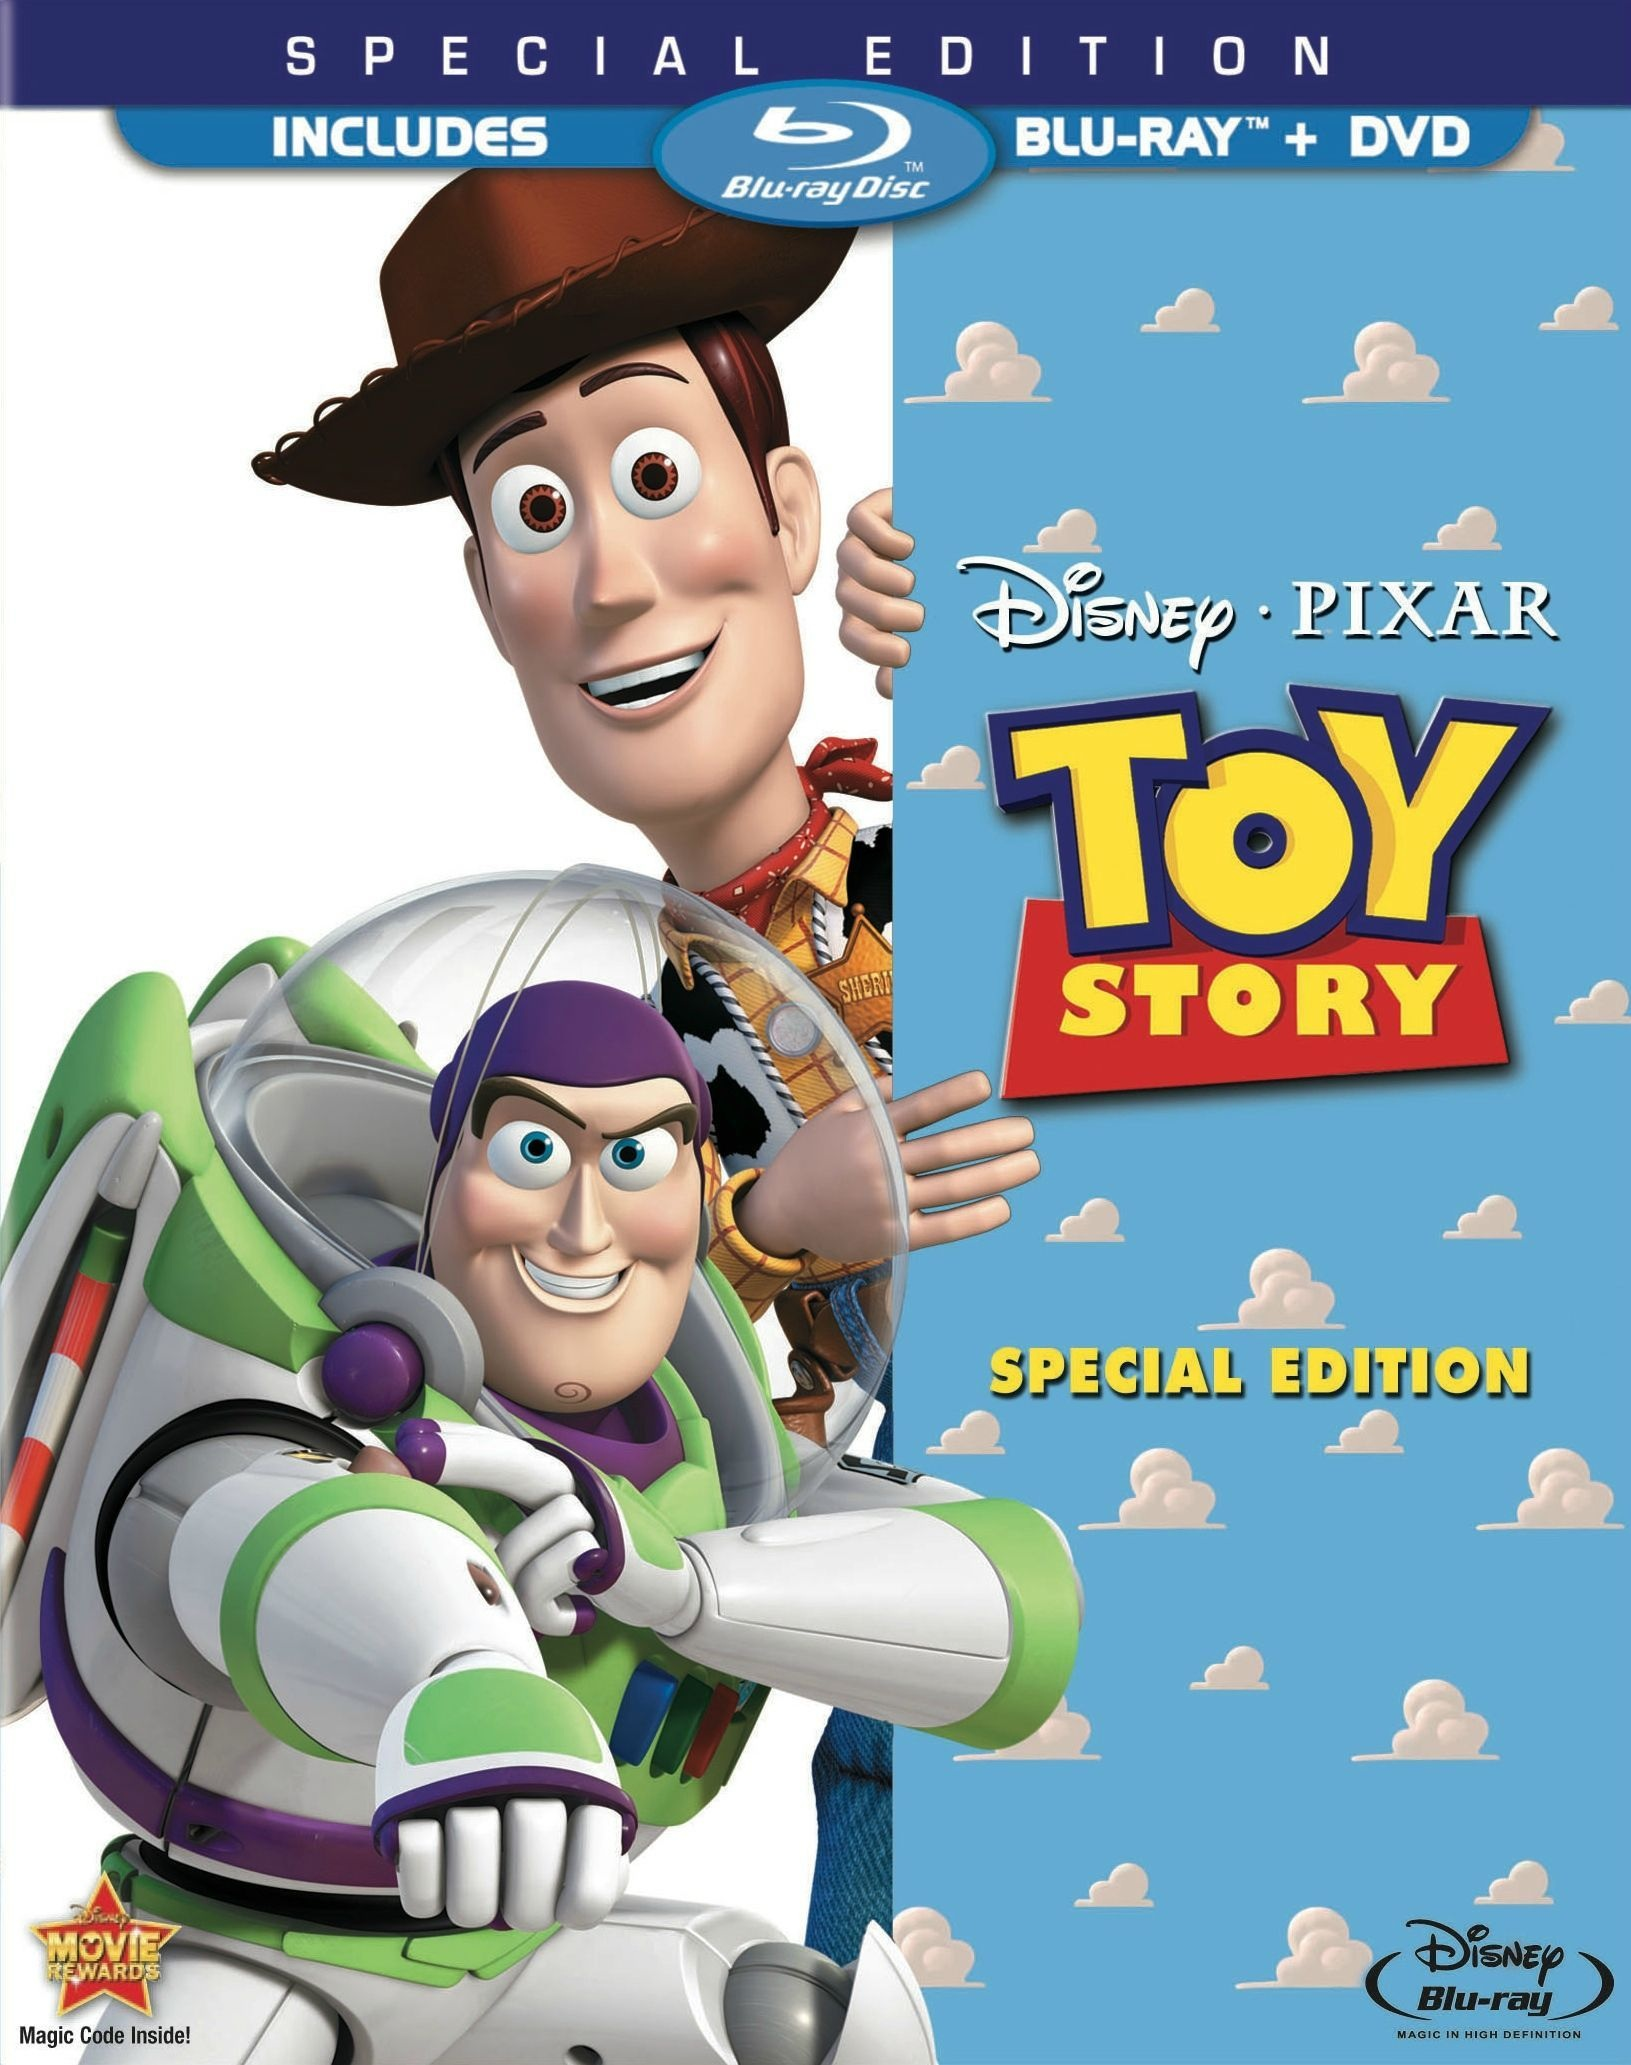 Blu-ray  sc 1 st  Disney Wiki - Fandom & Toy Story (video) | Disney Wiki | FANDOM powered by Wikia Aboutintivar.Com